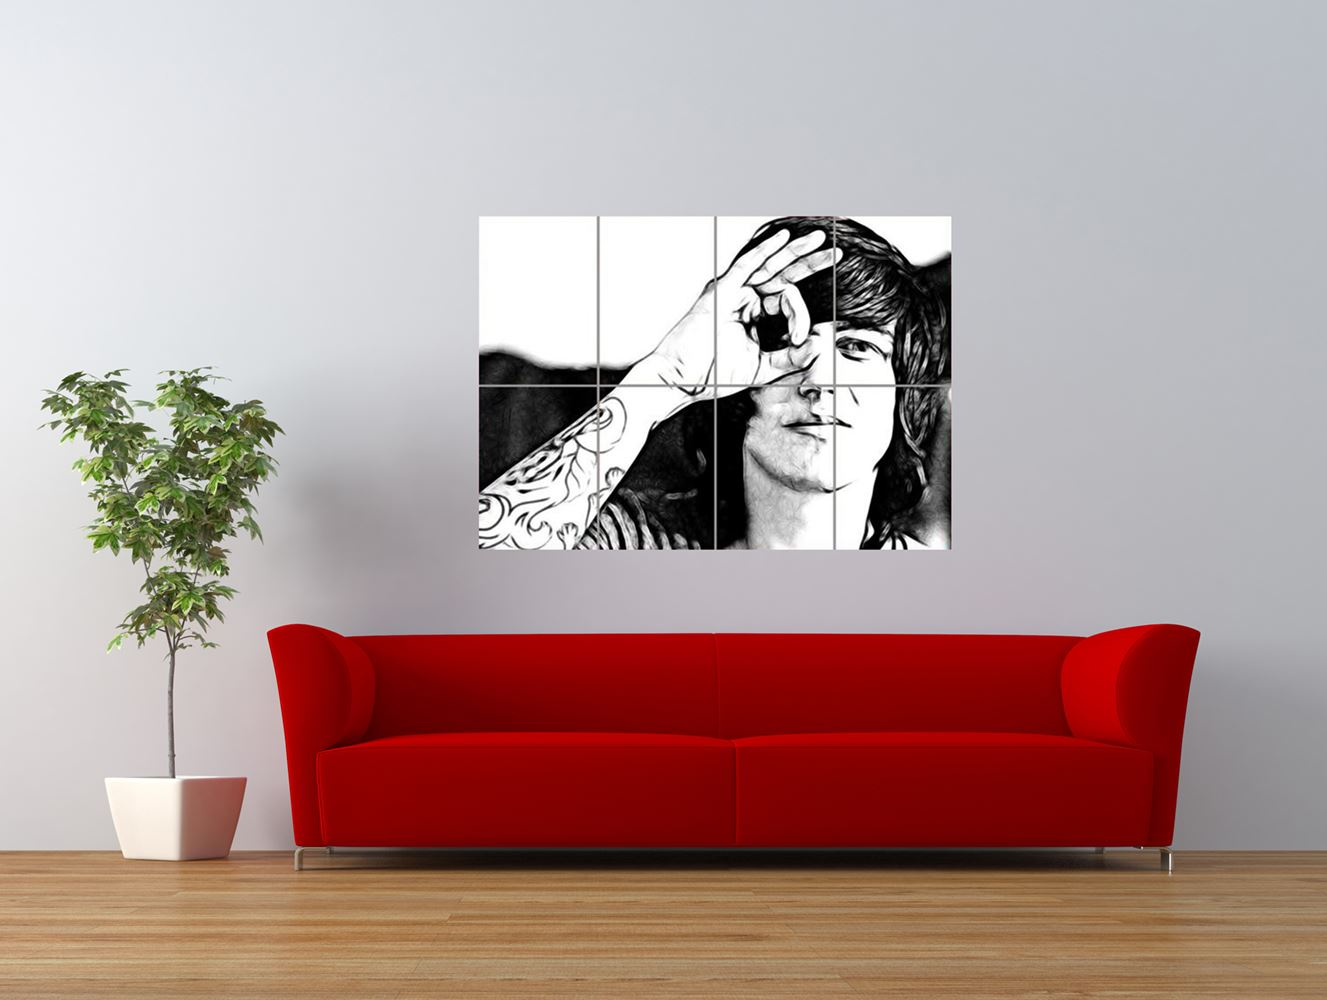 sleeping with sirens music band hardcore giant art print panel poster nor0134 ebay. Black Bedroom Furniture Sets. Home Design Ideas